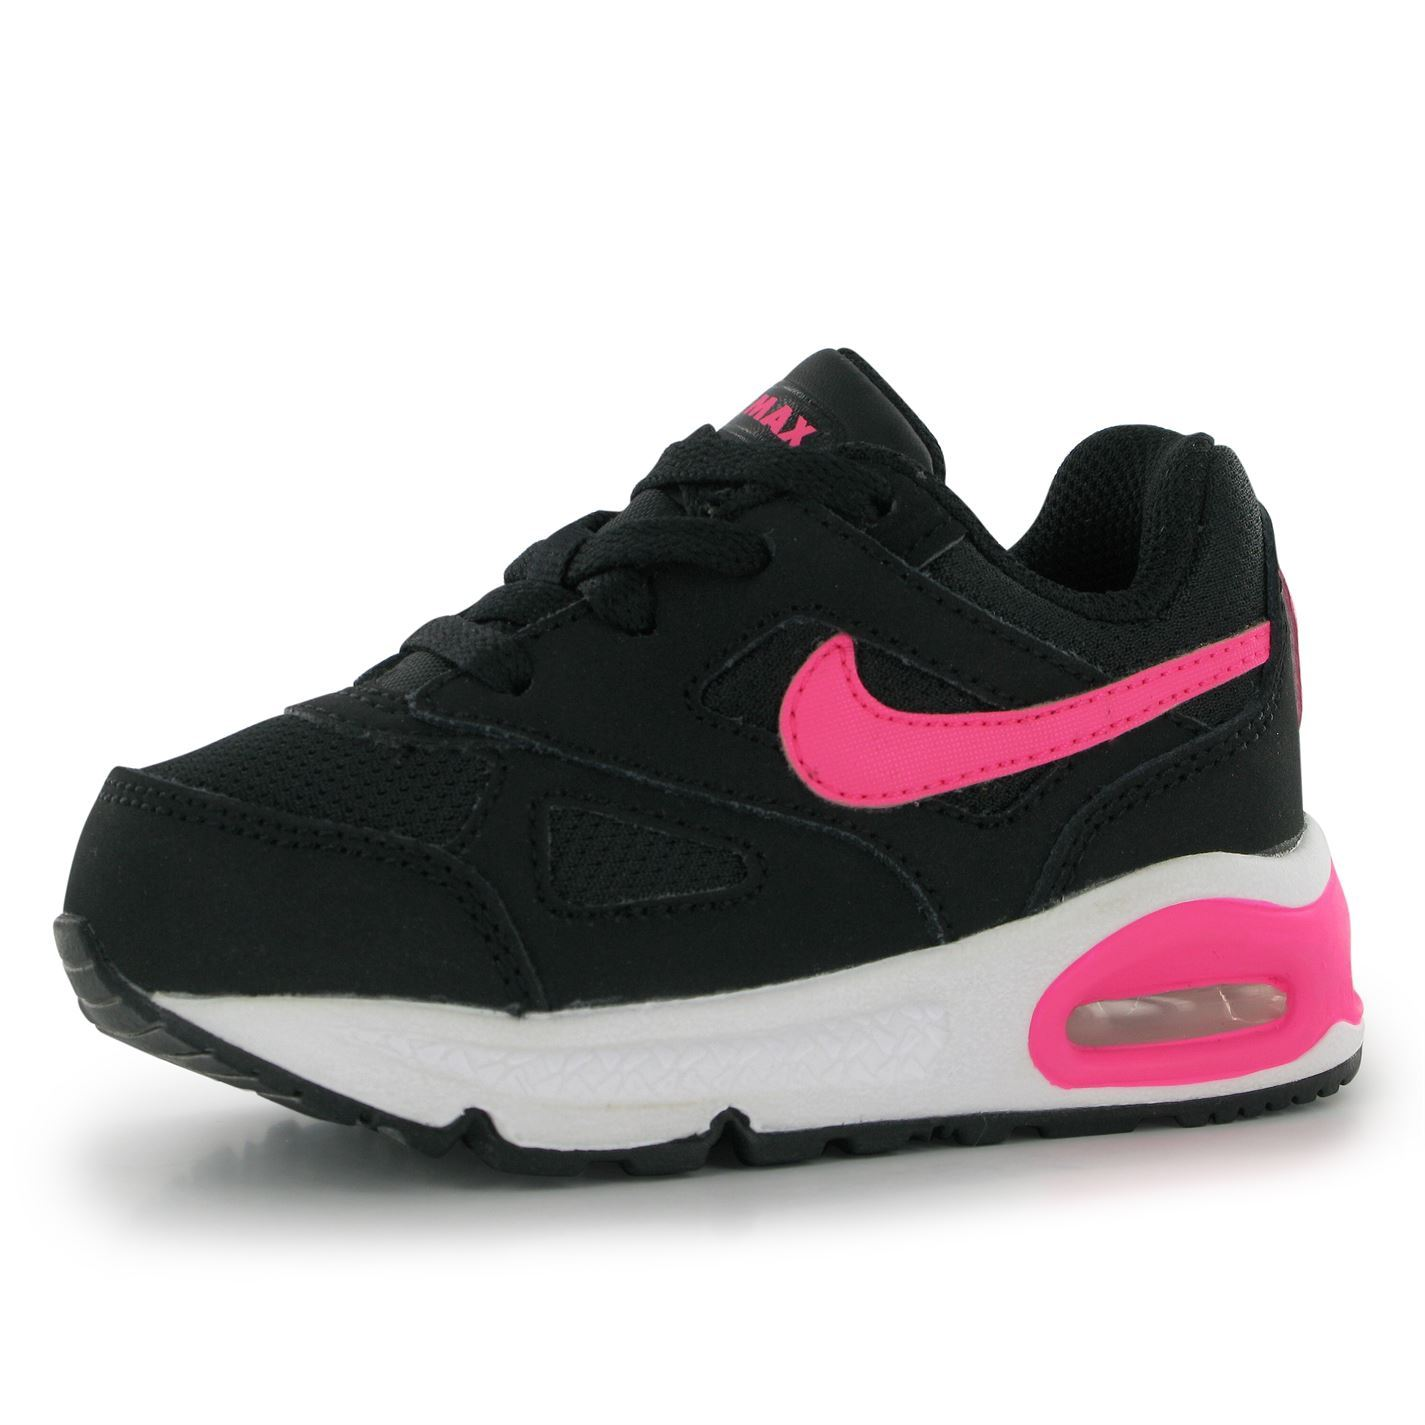 nike air max ivo trainers infants girls black pink baby. Black Bedroom Furniture Sets. Home Design Ideas